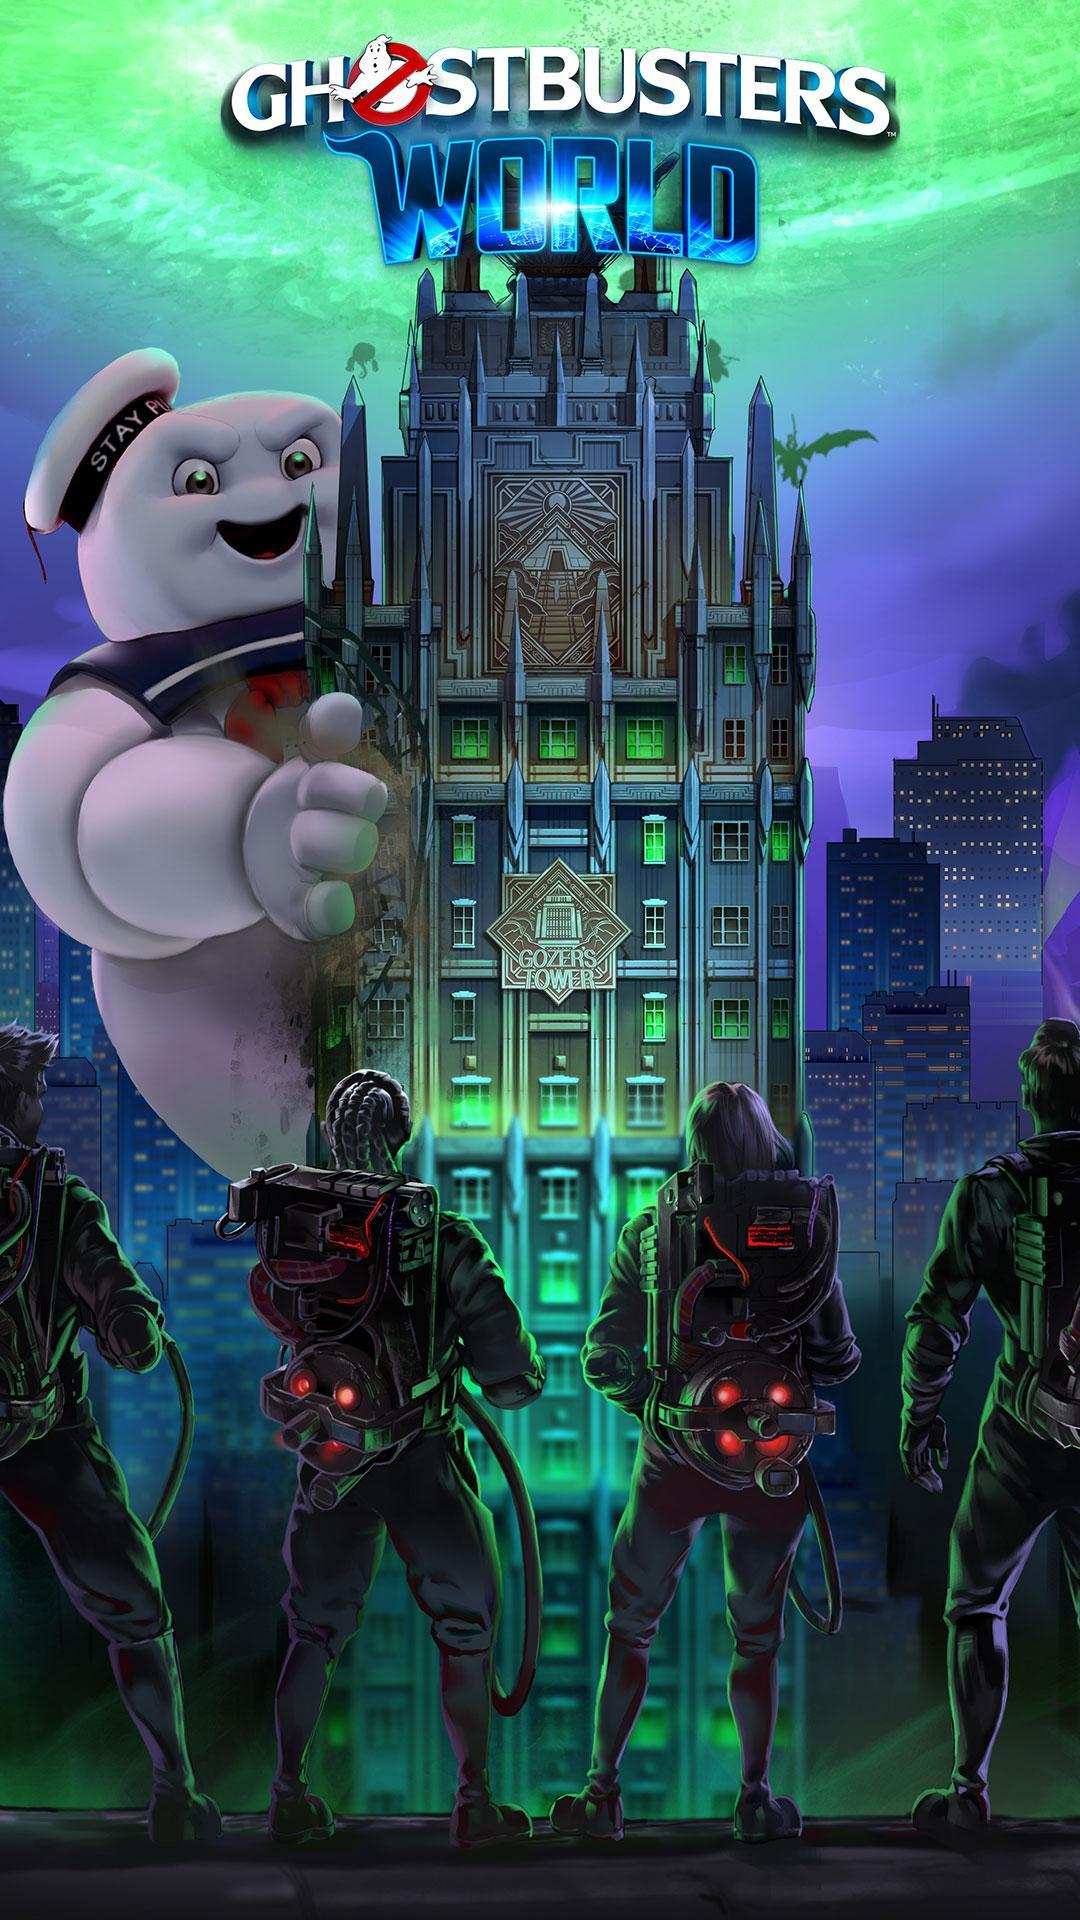 Ghostbusters World 1.16.2 Screenshot 9